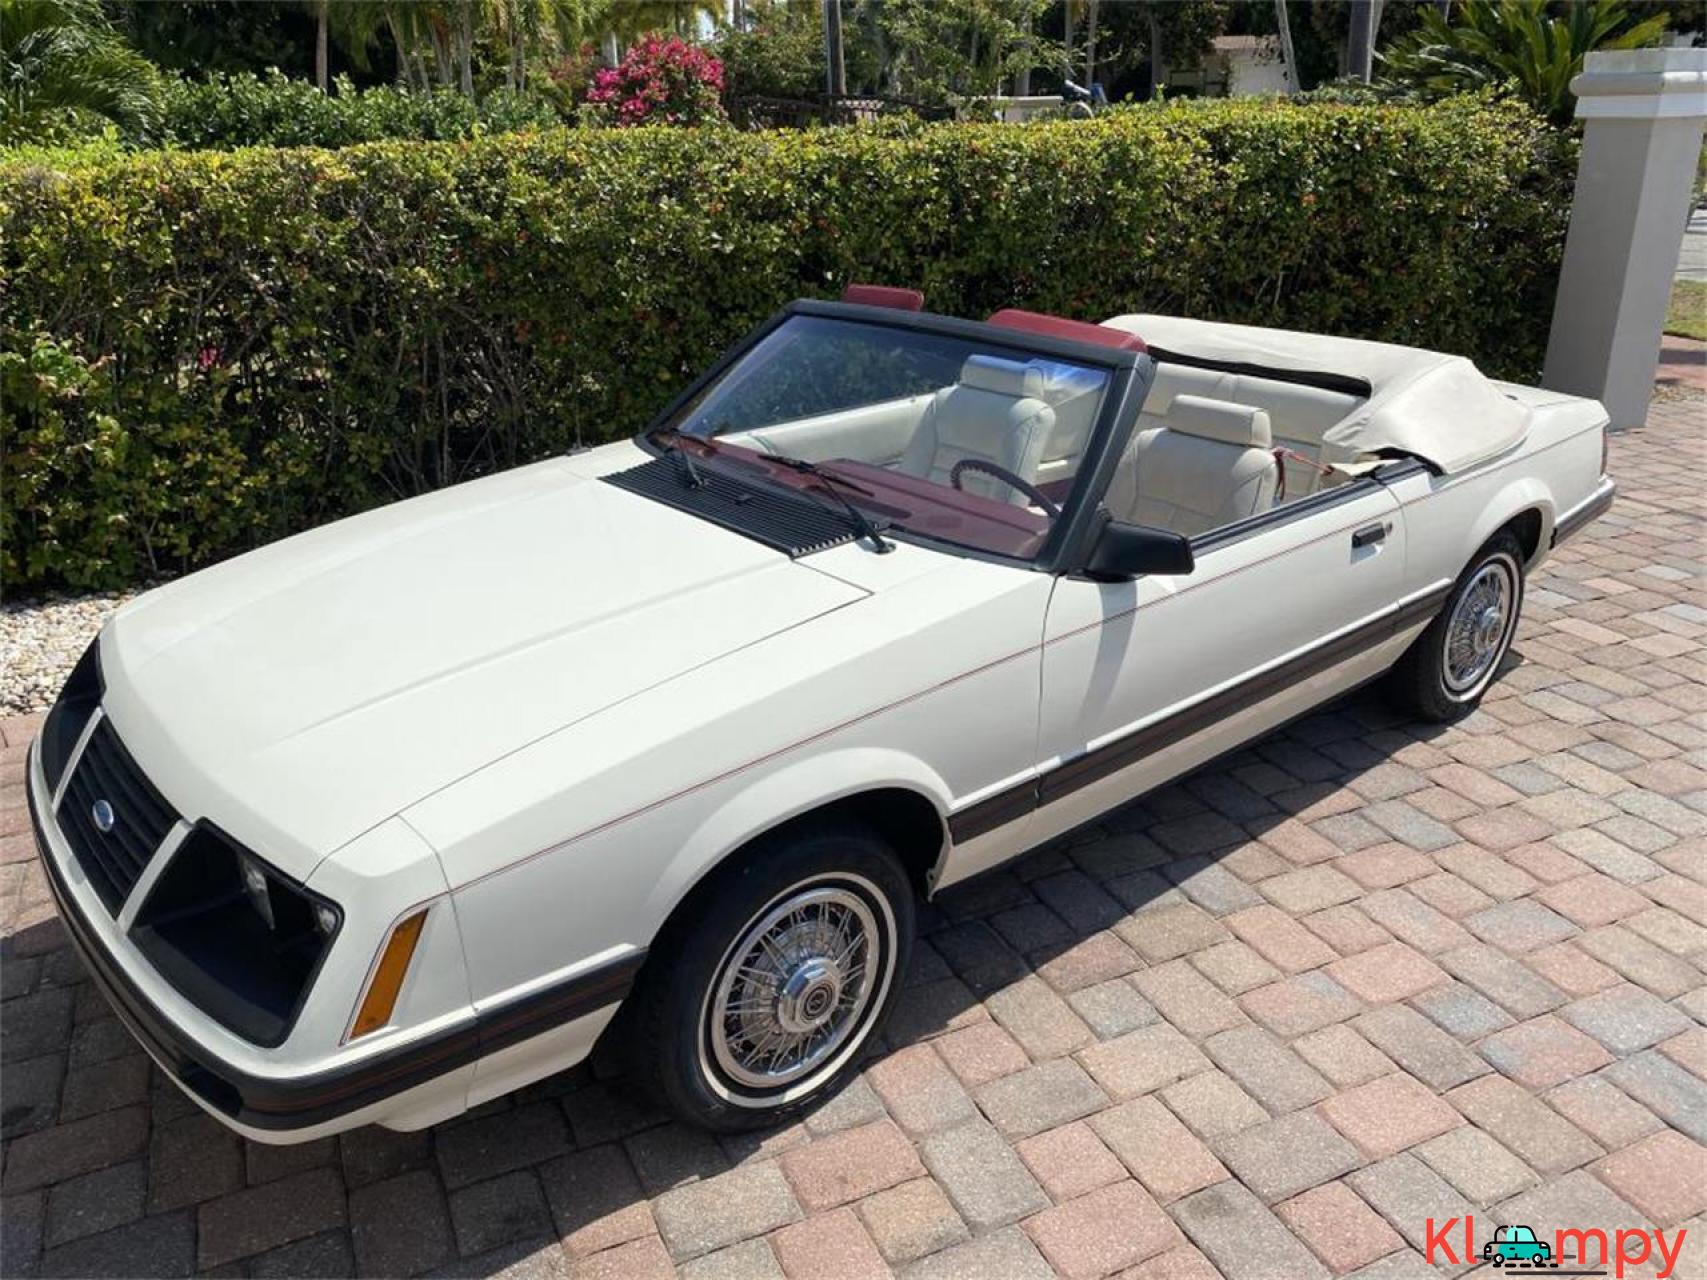 1983 Ford Mustang 3.8 LITRE V6 AUTO - 13/20